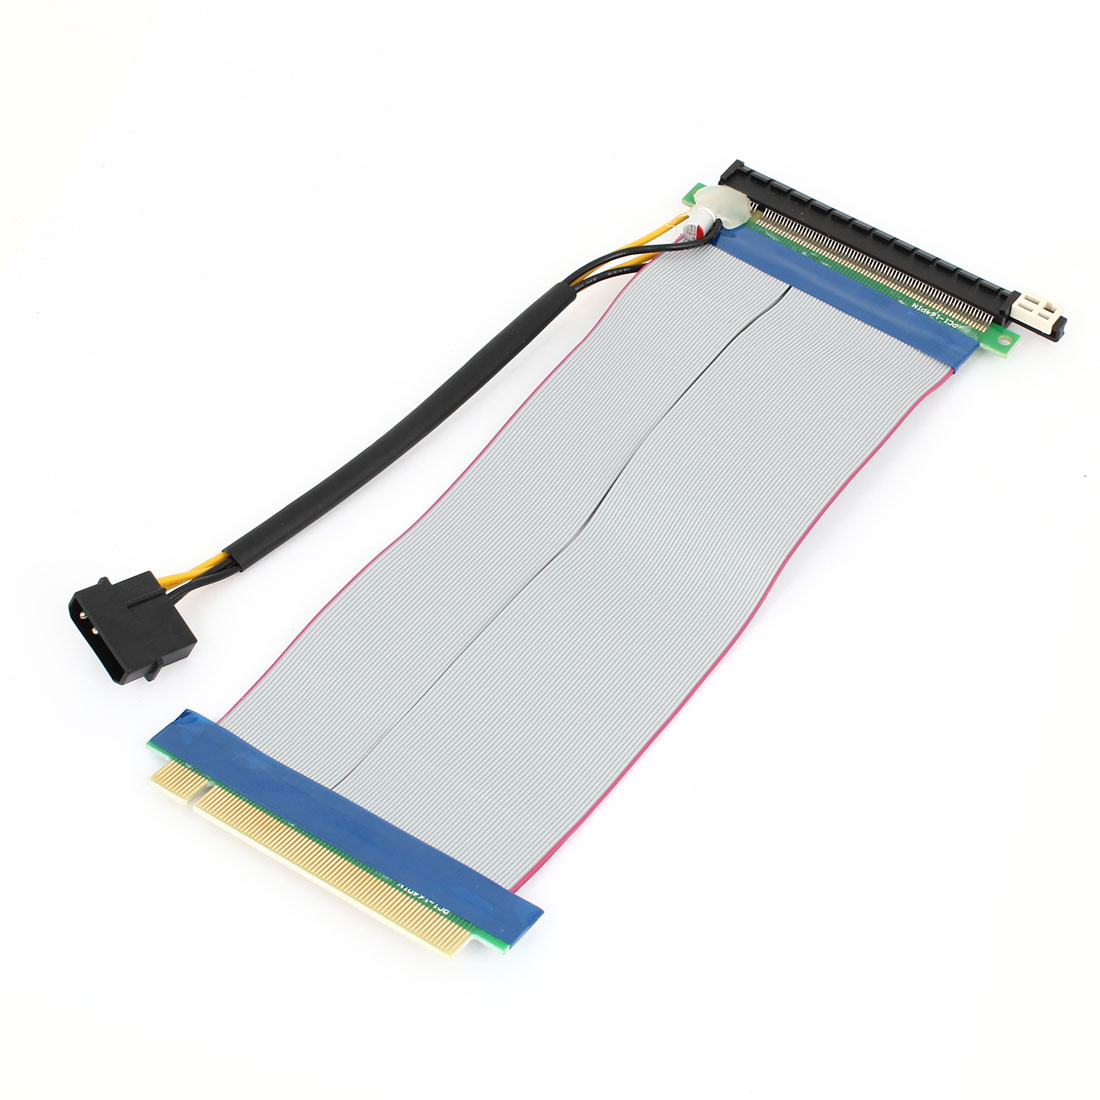 24.5cm 2Pin Power Connector PCI-E Express 16x Extension Cable Riser Card